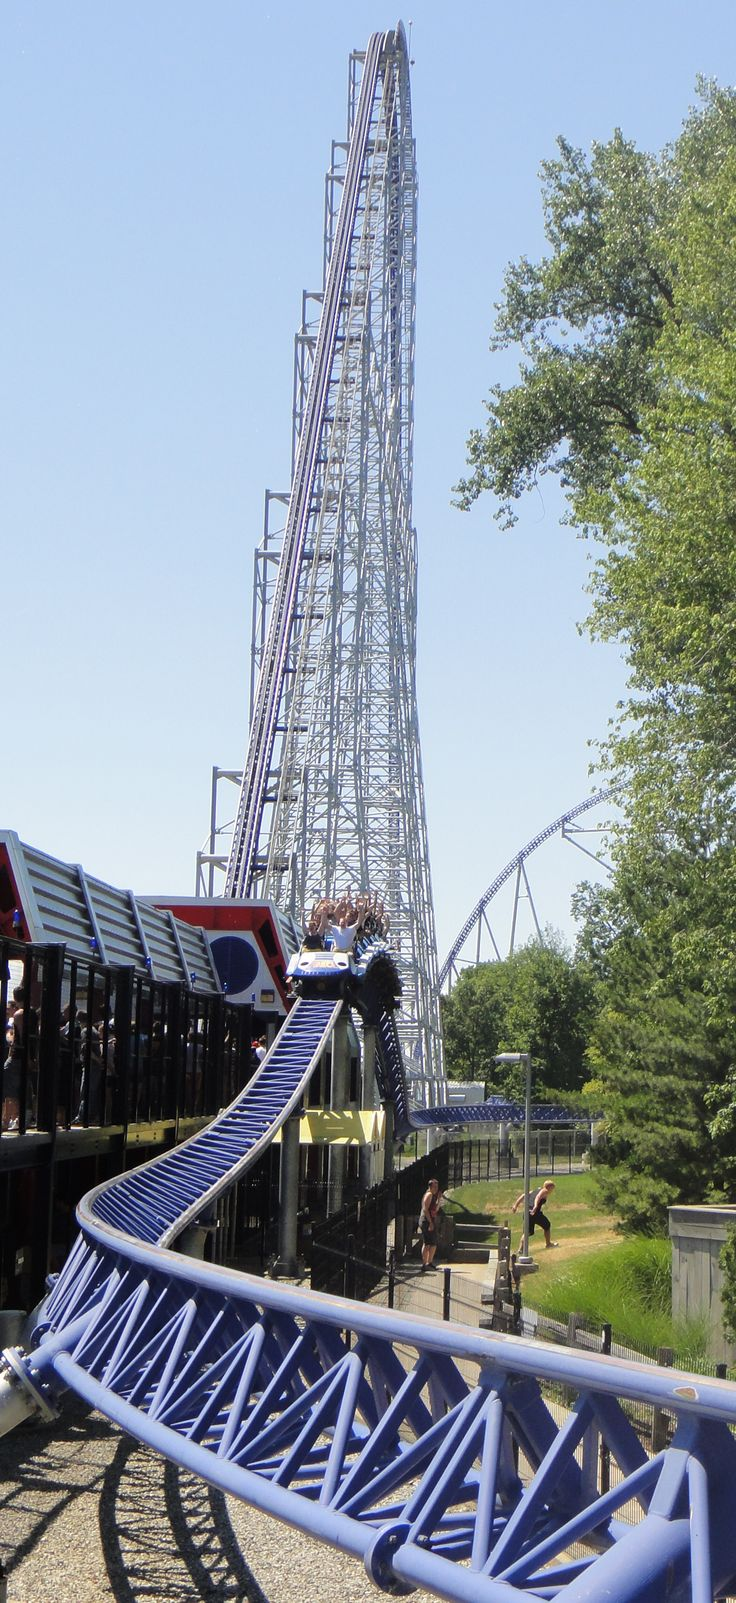 Millennium Force - Ive made it my goal to go back there this summer. The place I miss most about Ohio.